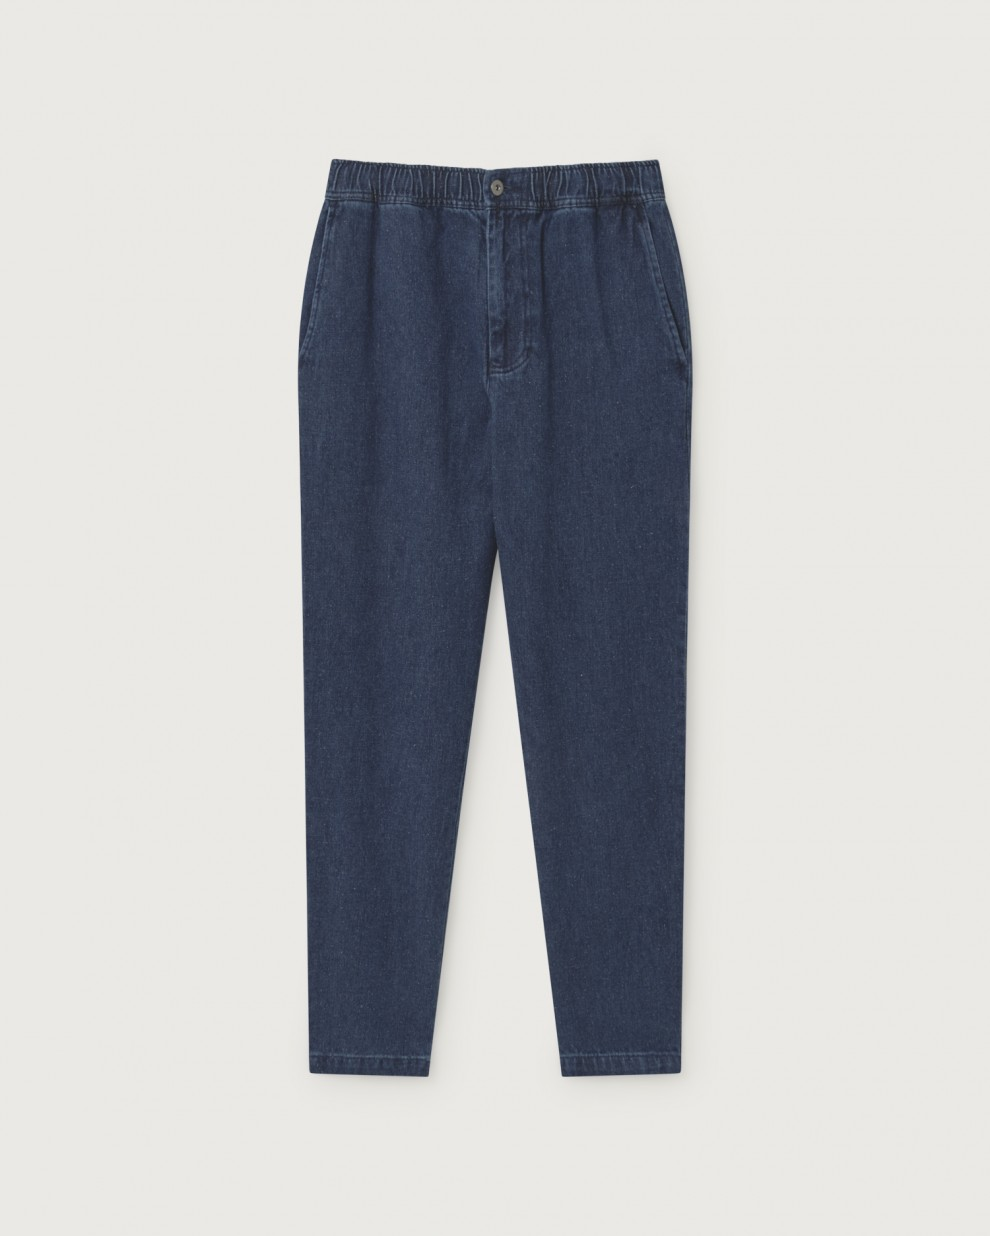 PANTALÓN TRAVEL HEMP DENIM